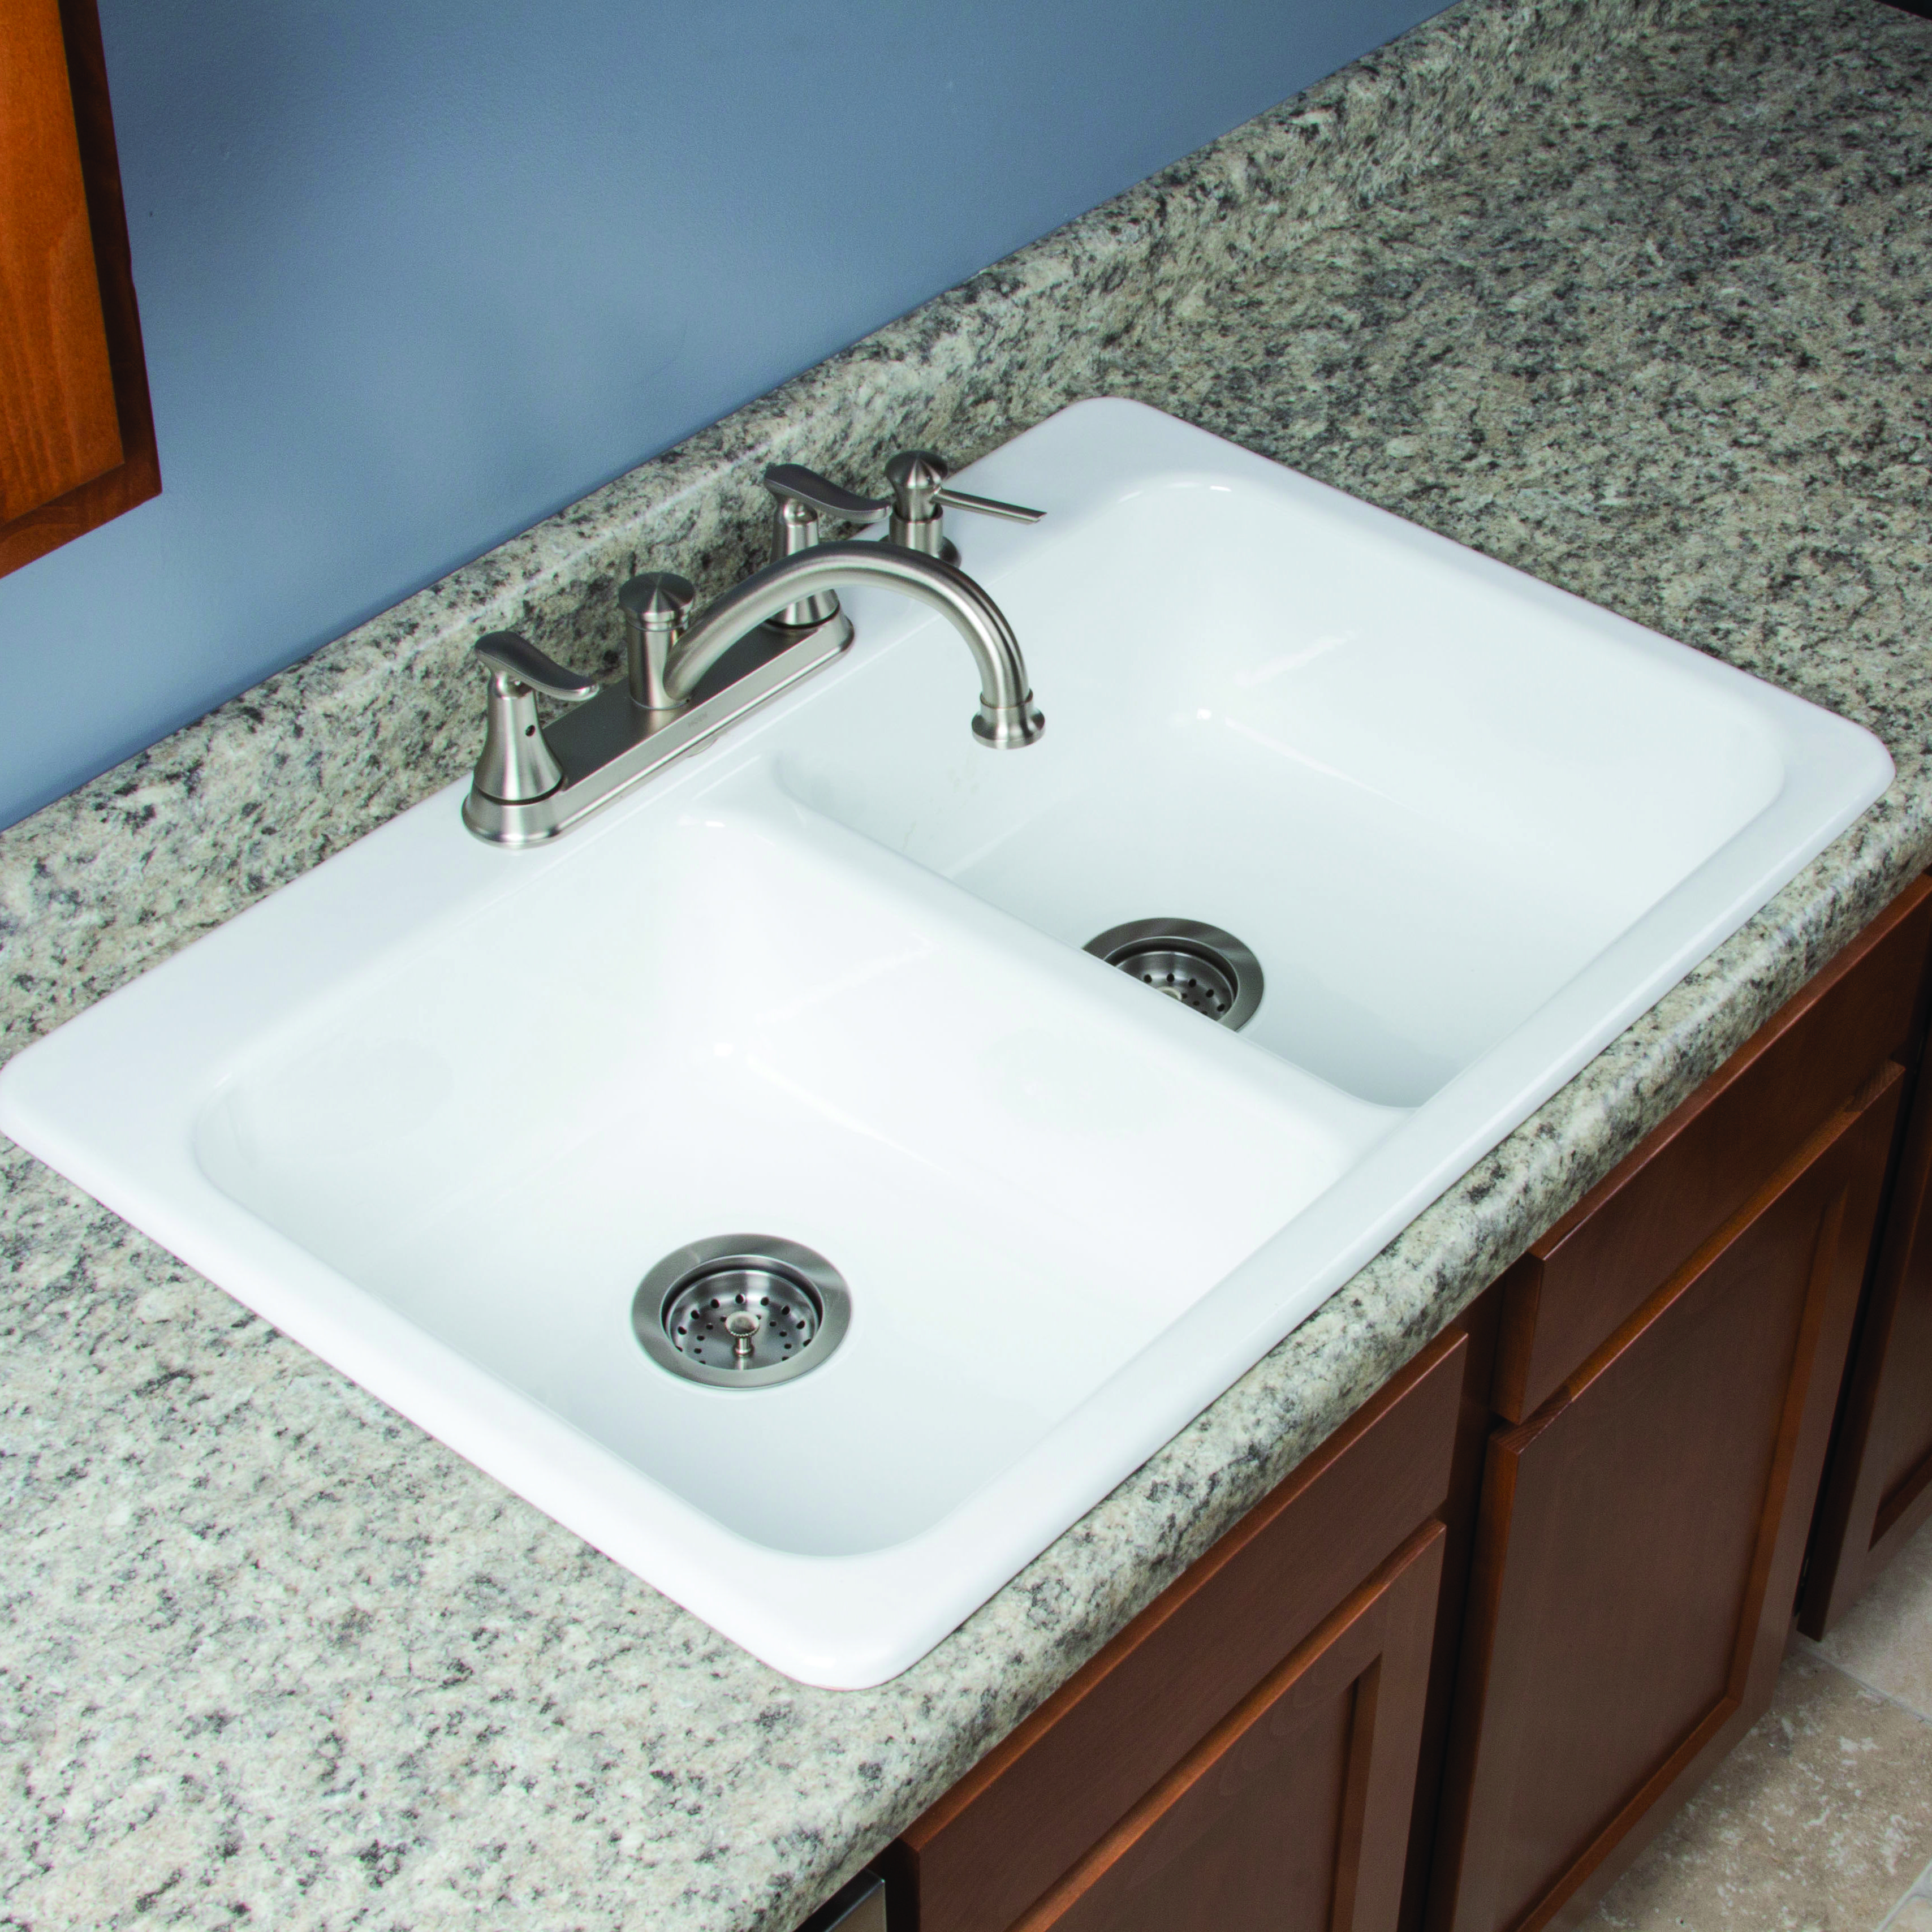 Ceco Kitchen Sinks Made of durable cast iron and coated with two coats of fine made of durable cast iron and coated with two coats of fine porcelain enamel the ceco daytona self rimming kitchen sink is made to last for years and bring workwithnaturefo